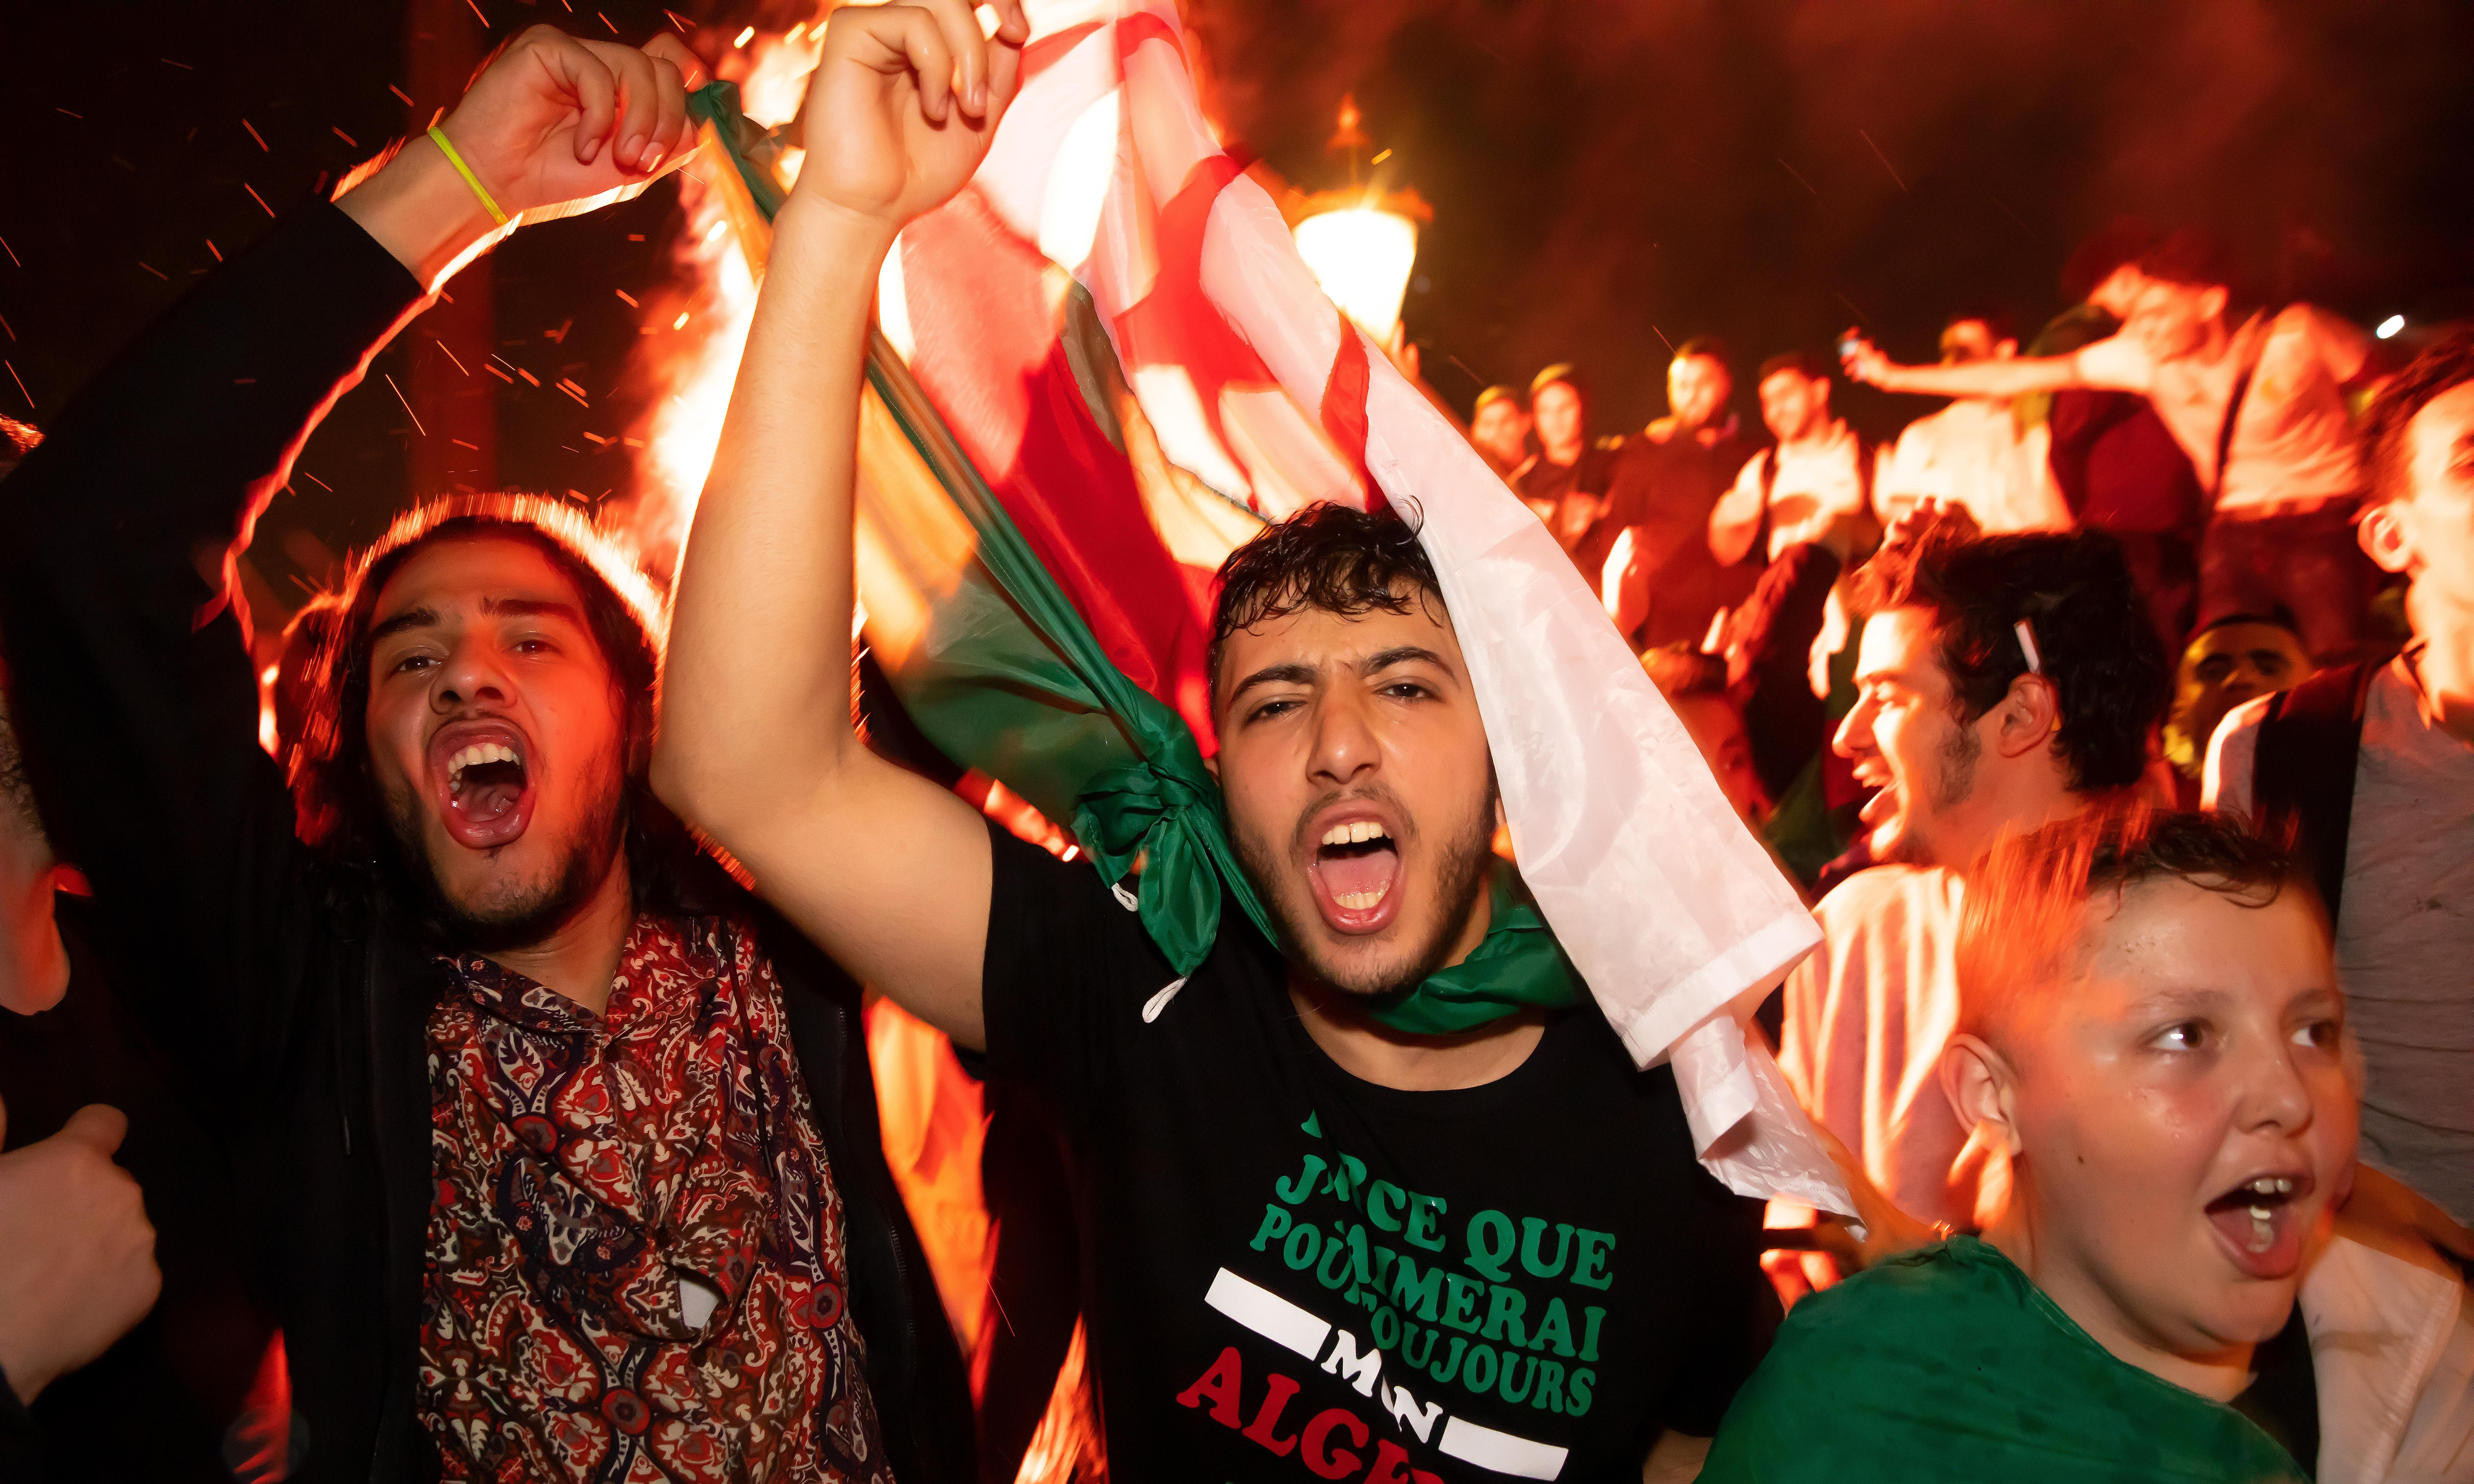 Algeria fans celebrate football victory in the streets of London